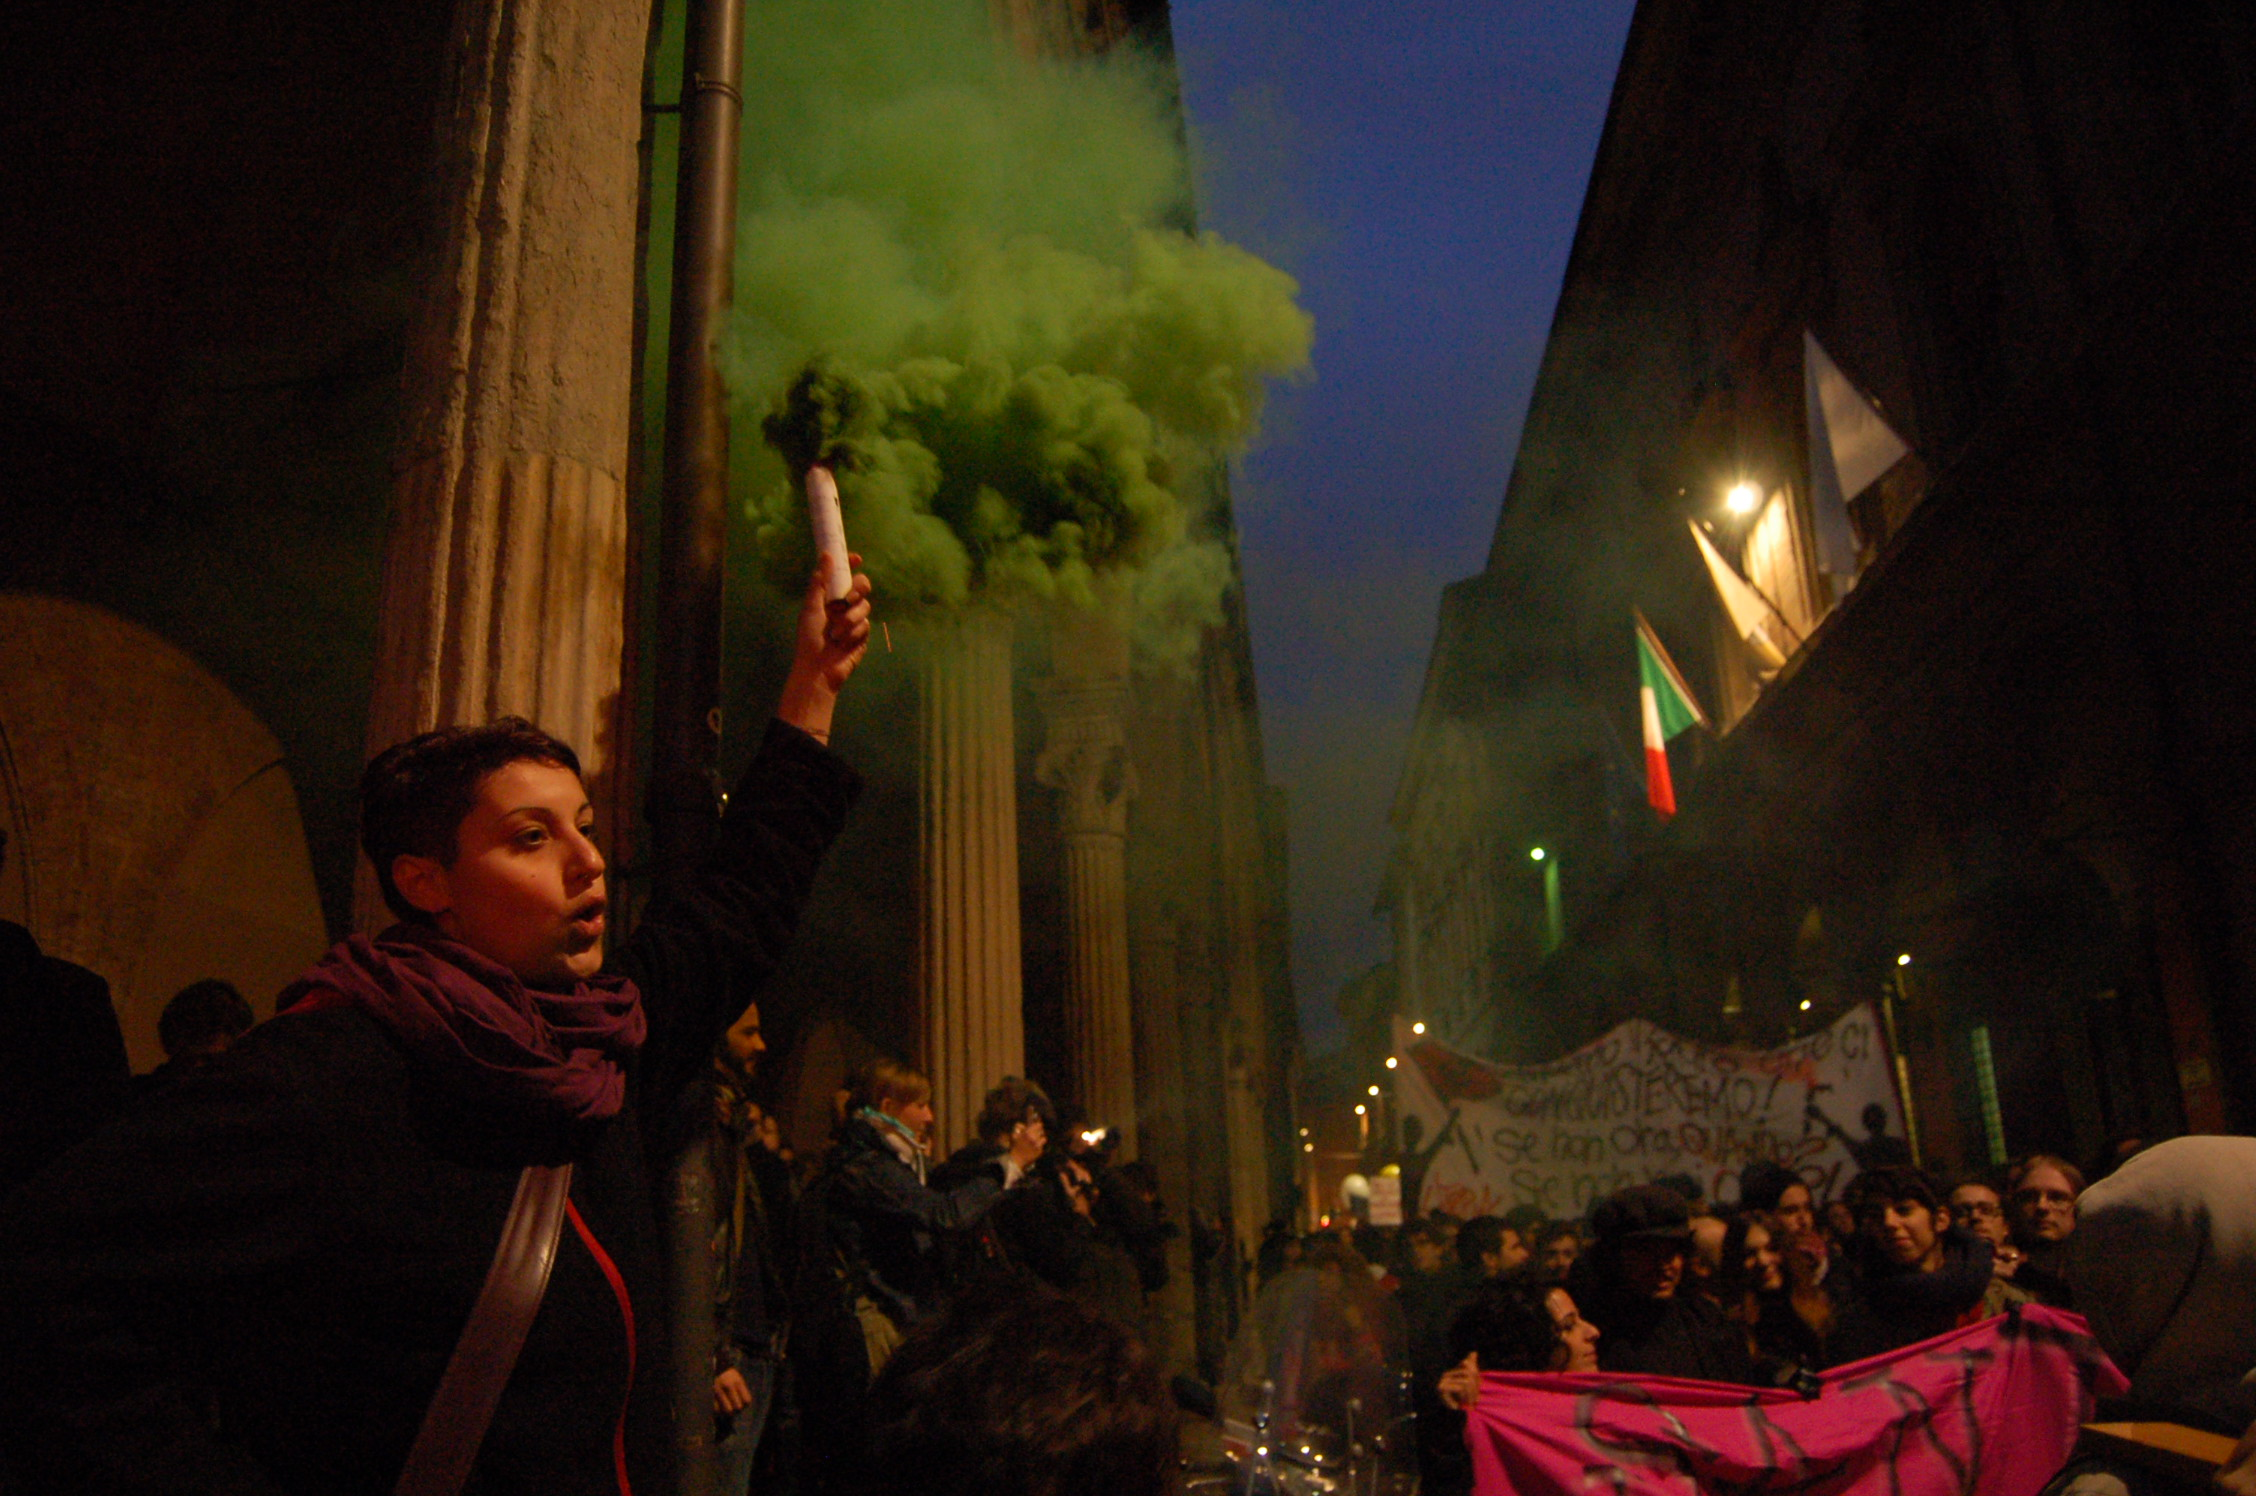 Occupy movement grows in Italy, as protesters occupy a cinema, warehouse and university in Bologna